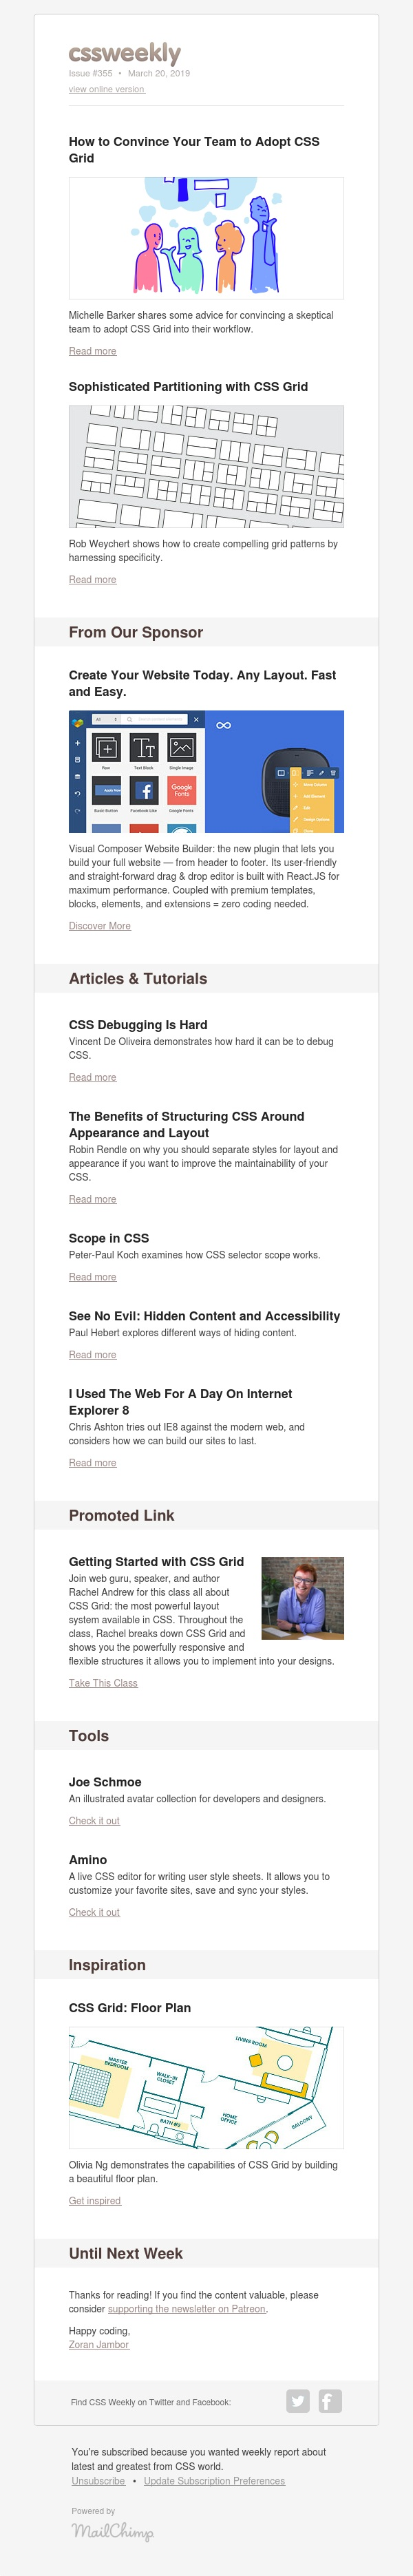 Issue #355: Adopting Grid, Debugging, Structuring CSS